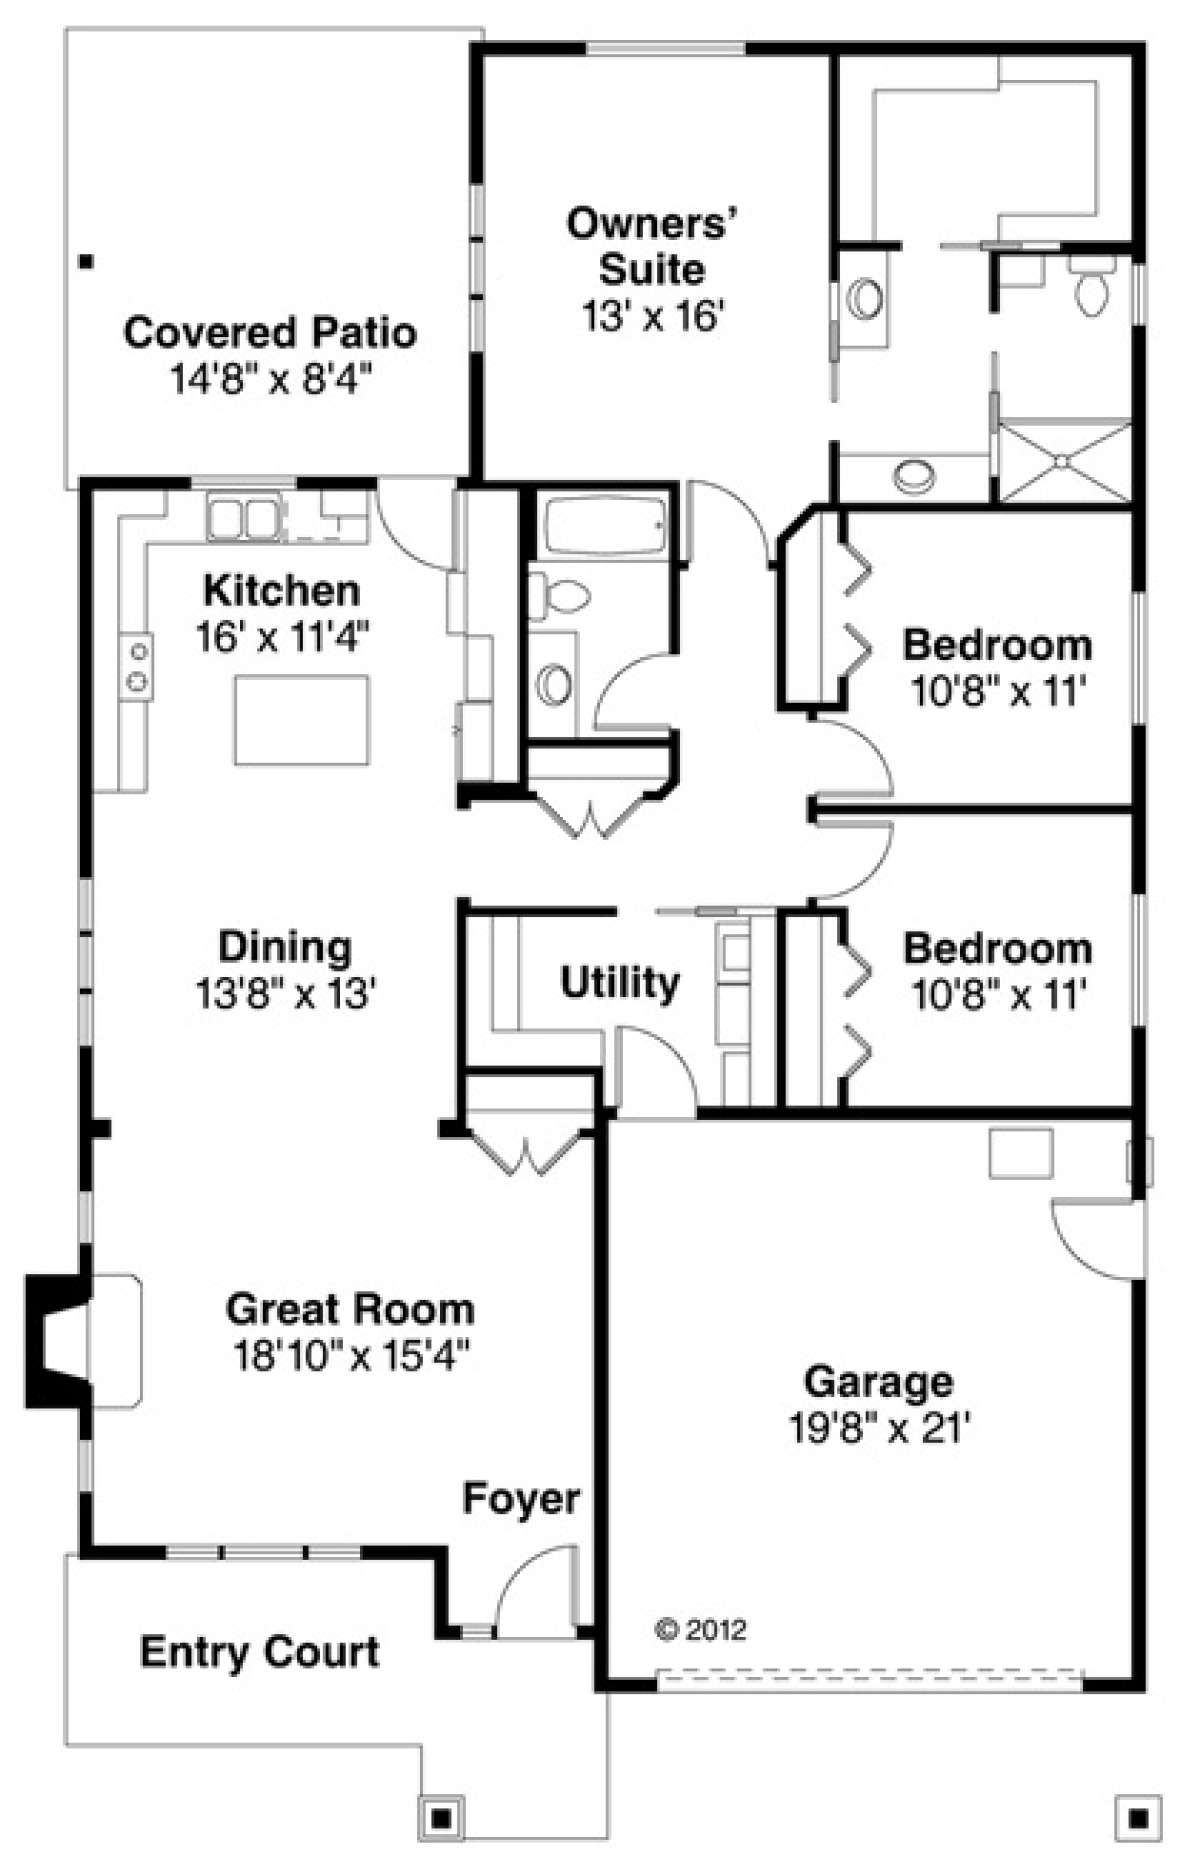 House Plan 035 00614 Cottage Plan 1 737 Square Feet 3 Bedrooms 2 Bathrooms In 2021 Garage Floor Plans Bungalow House Plans House Plans